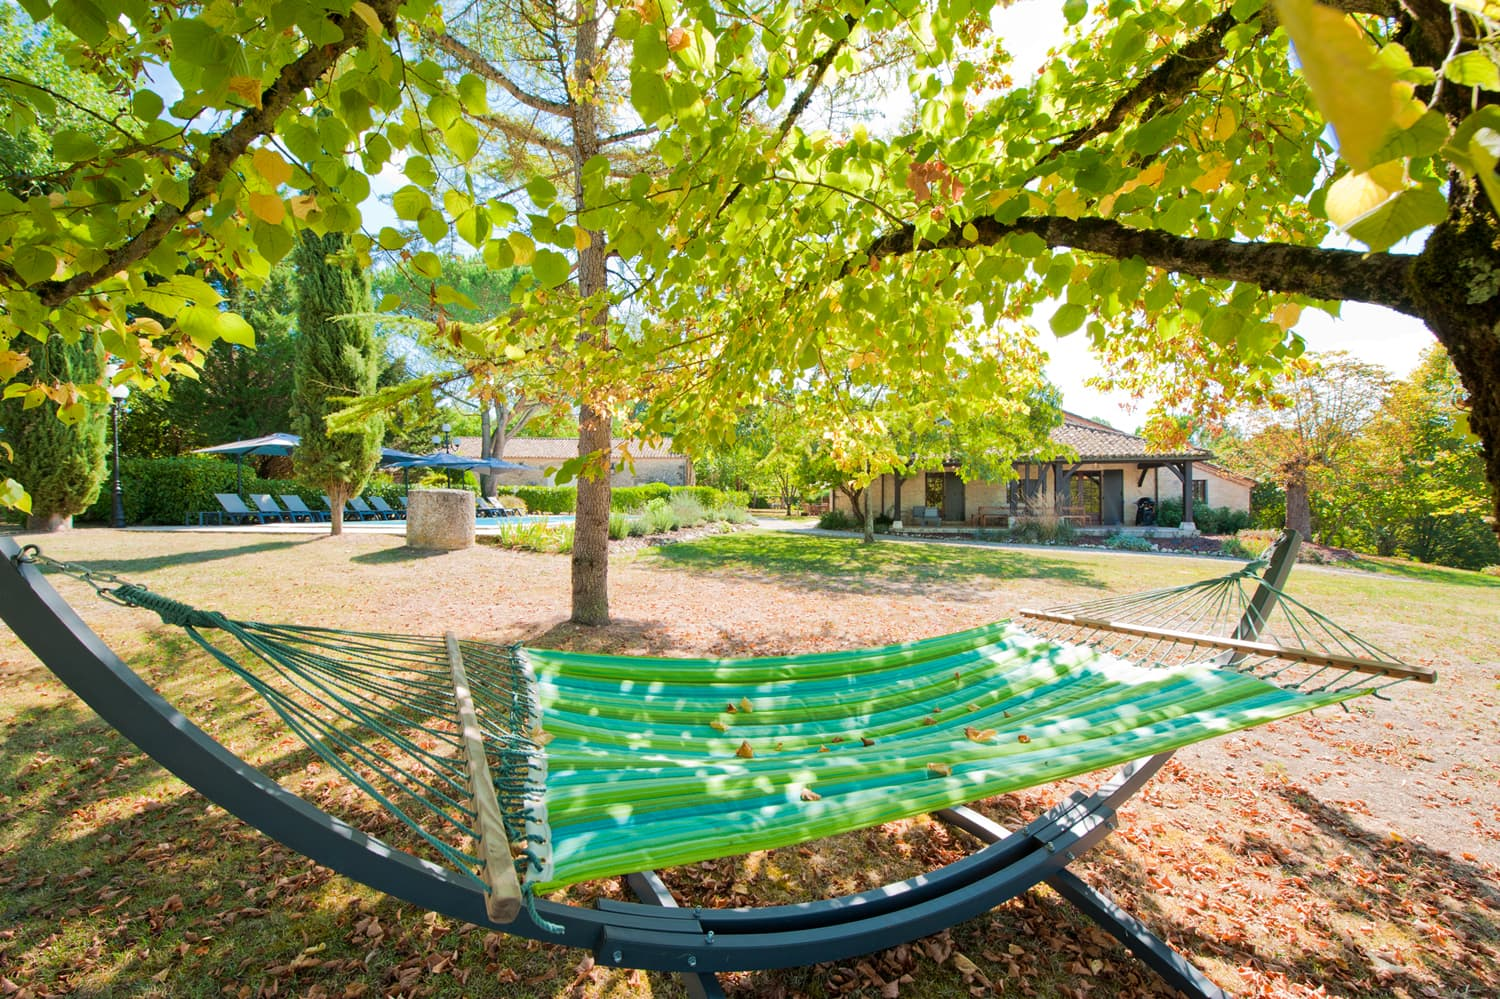 Lawned garden with hammock